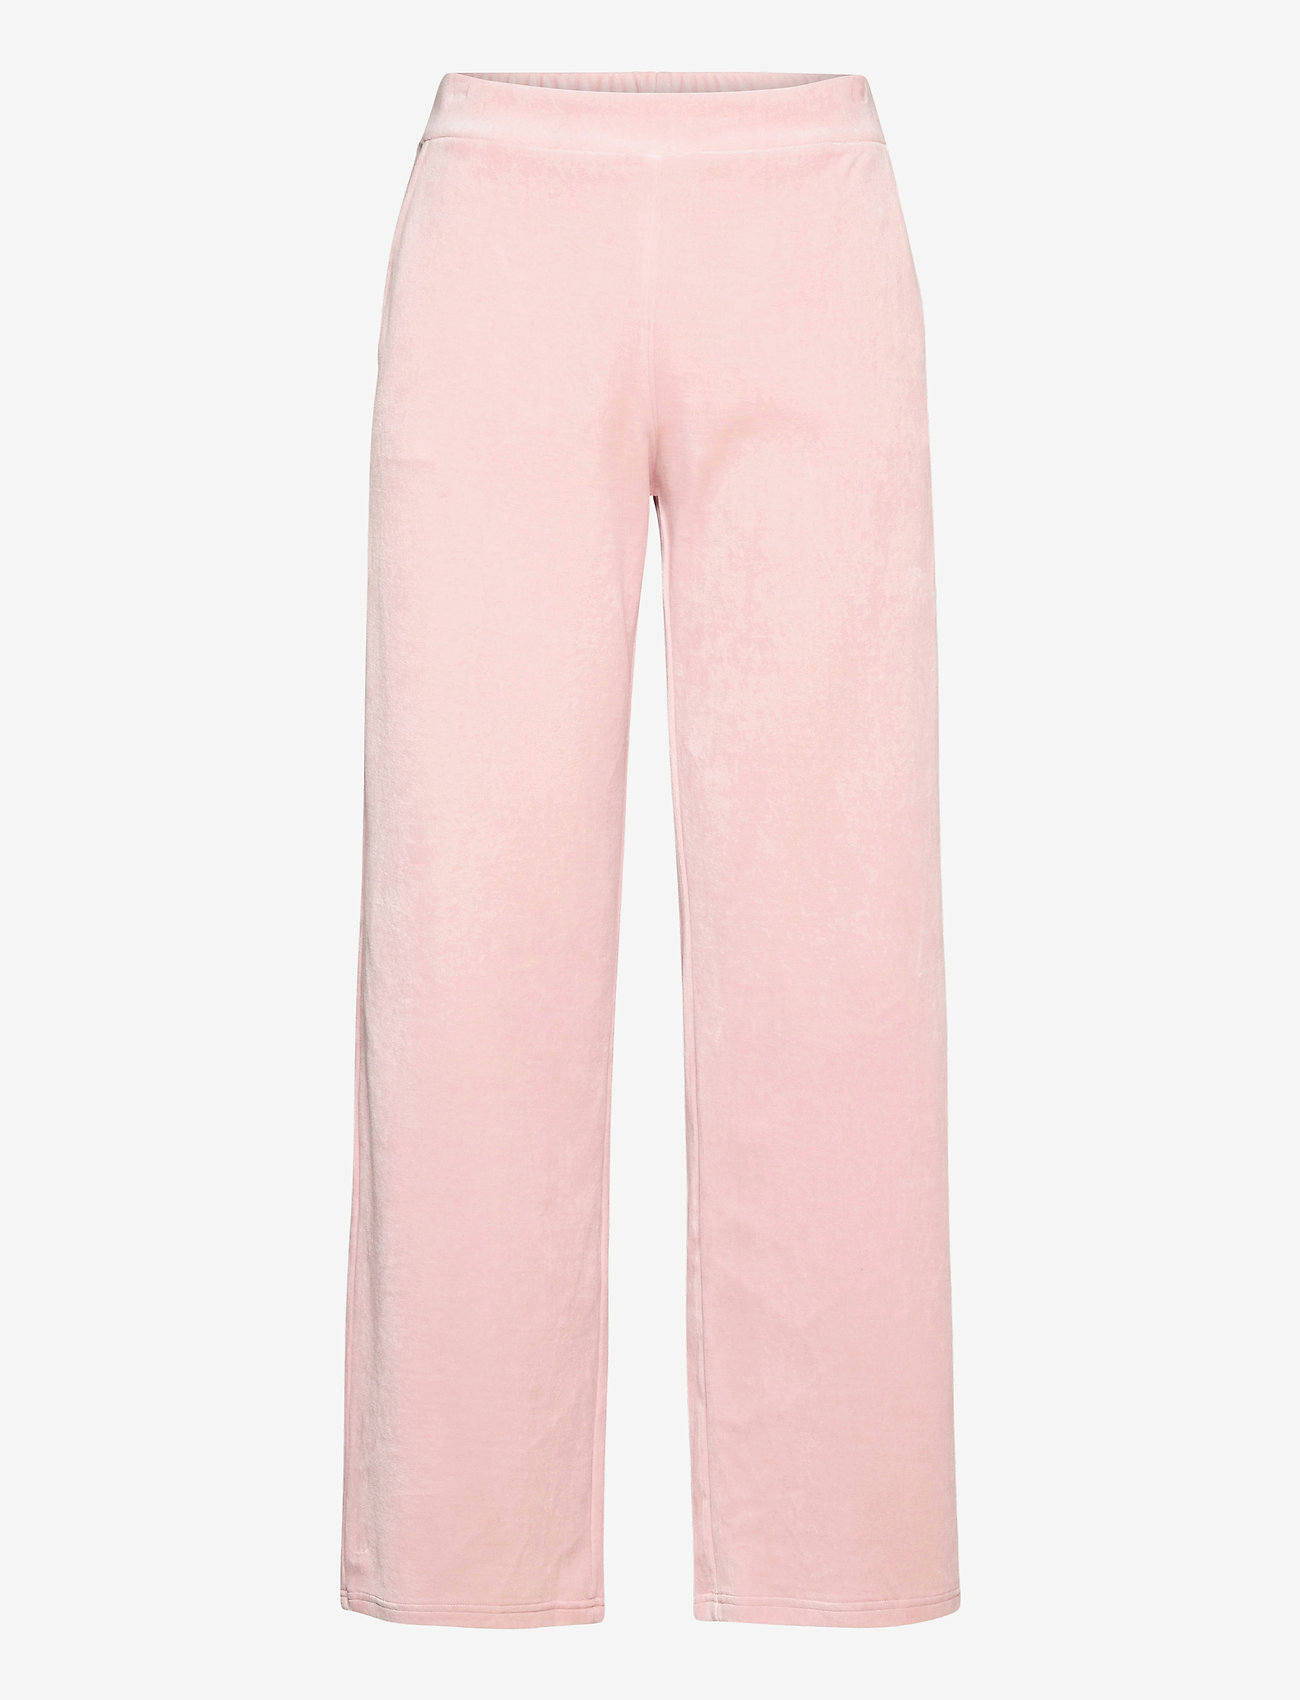 Nanso - Ladies trousers, Vivia - doły - light pink - 0